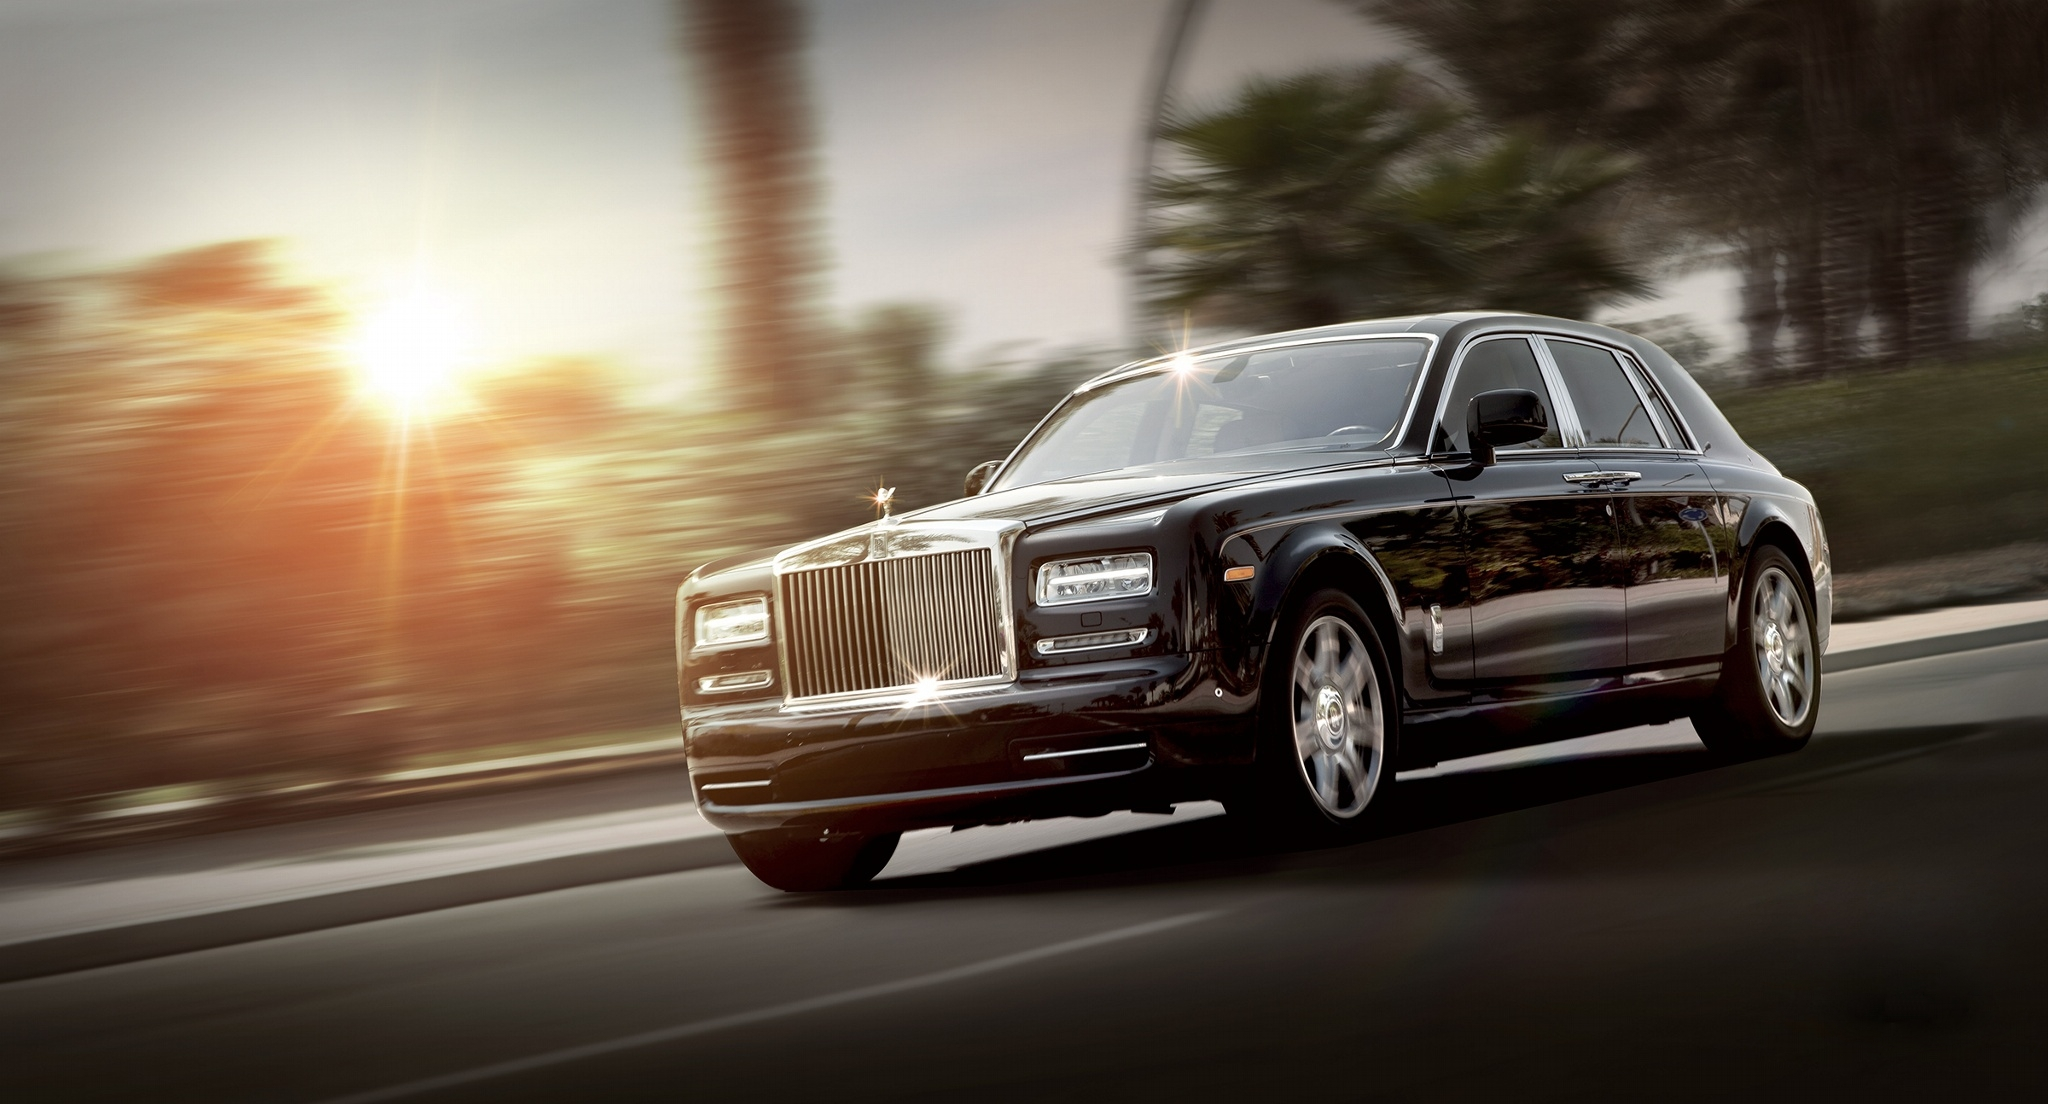 87425 download wallpaper Rolls-Royce, Cars, Traffic, Movement, Side View, Luxury, Phantom screensavers and pictures for free